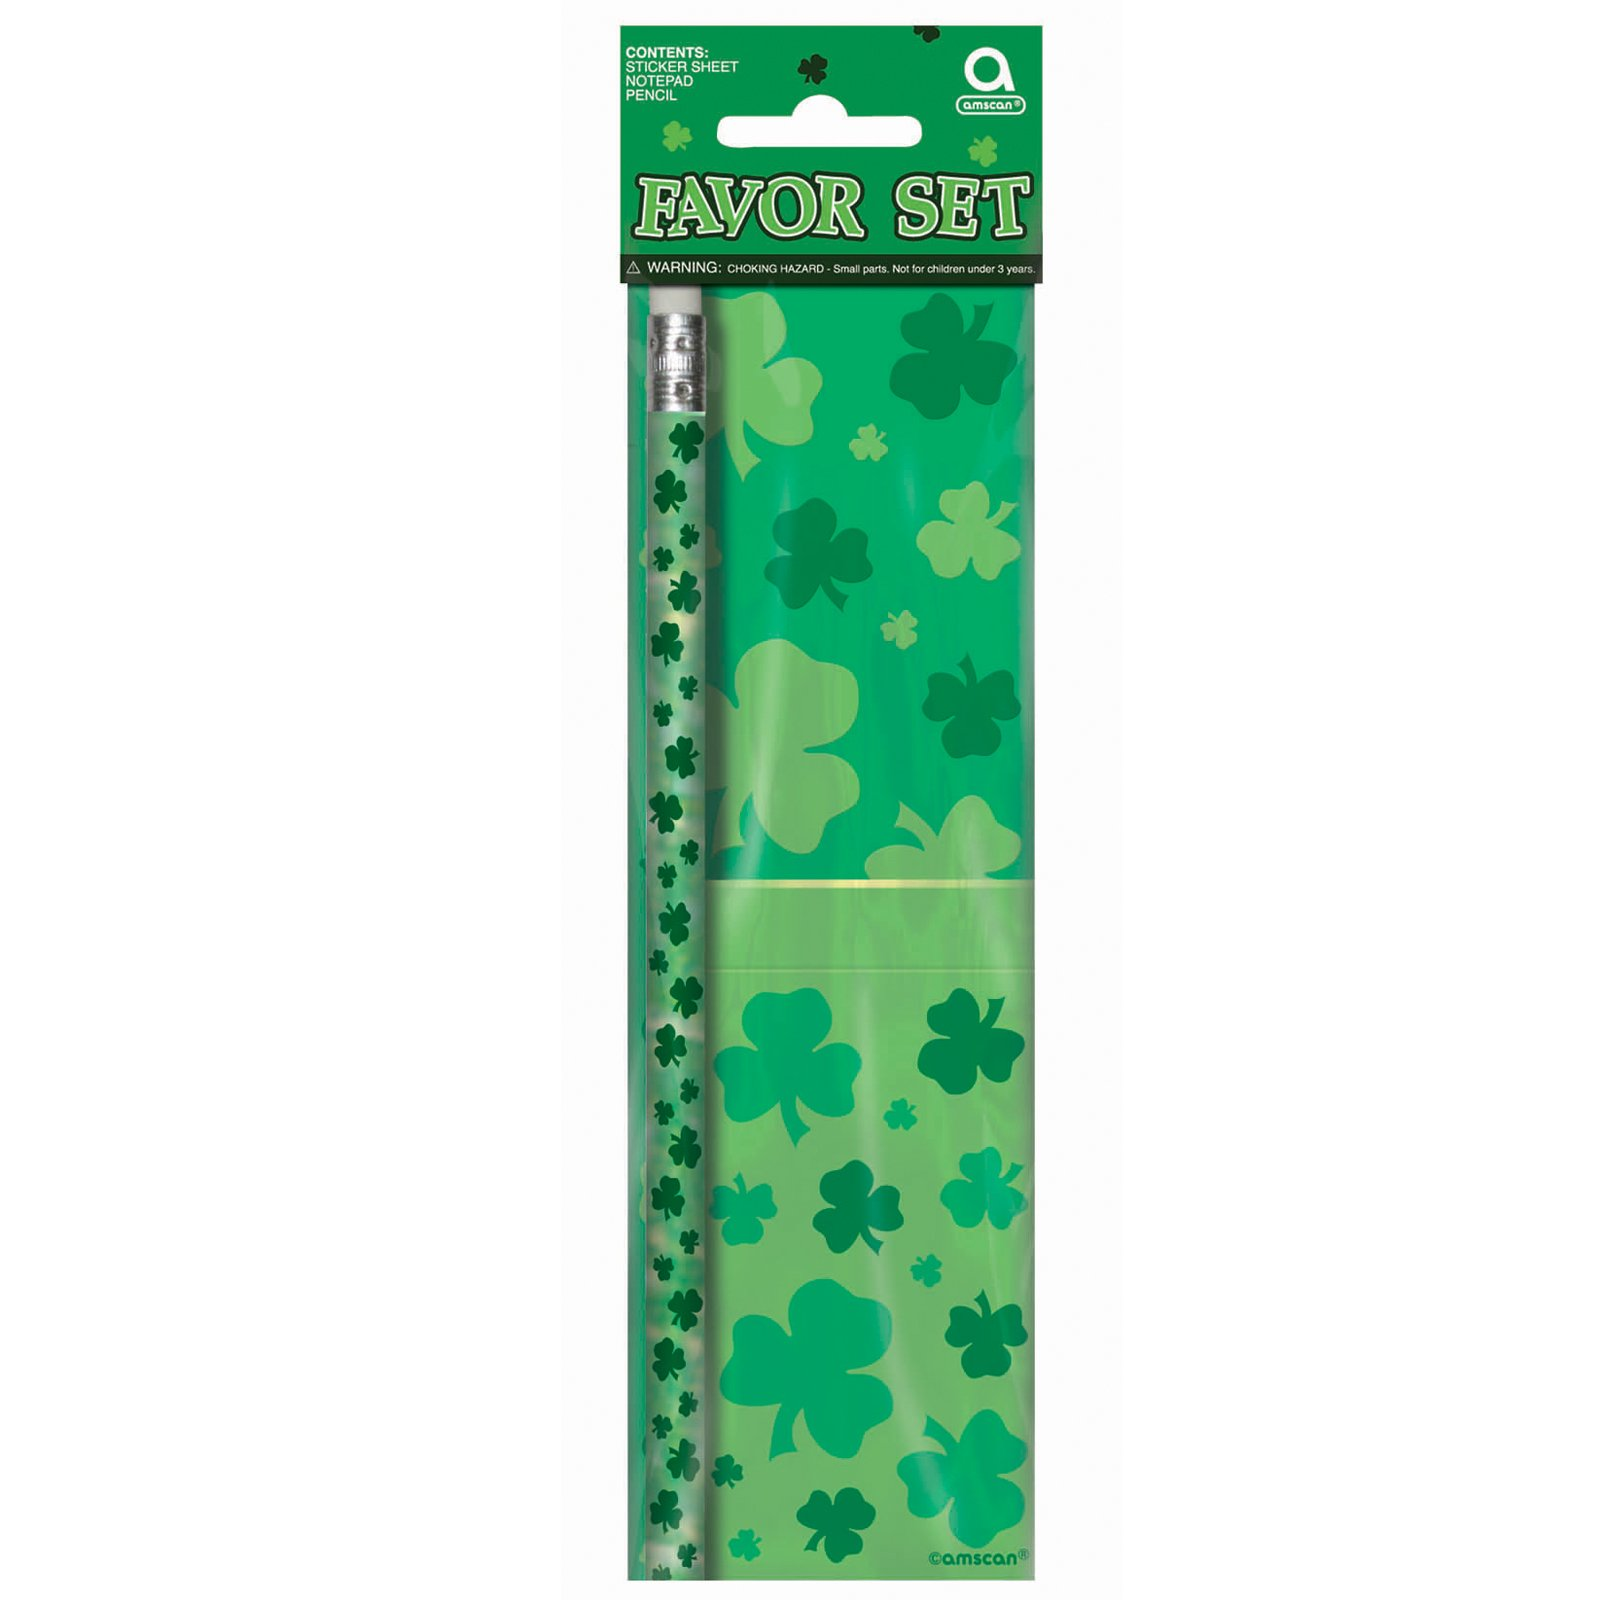 St. Patrick's Day Favor Set